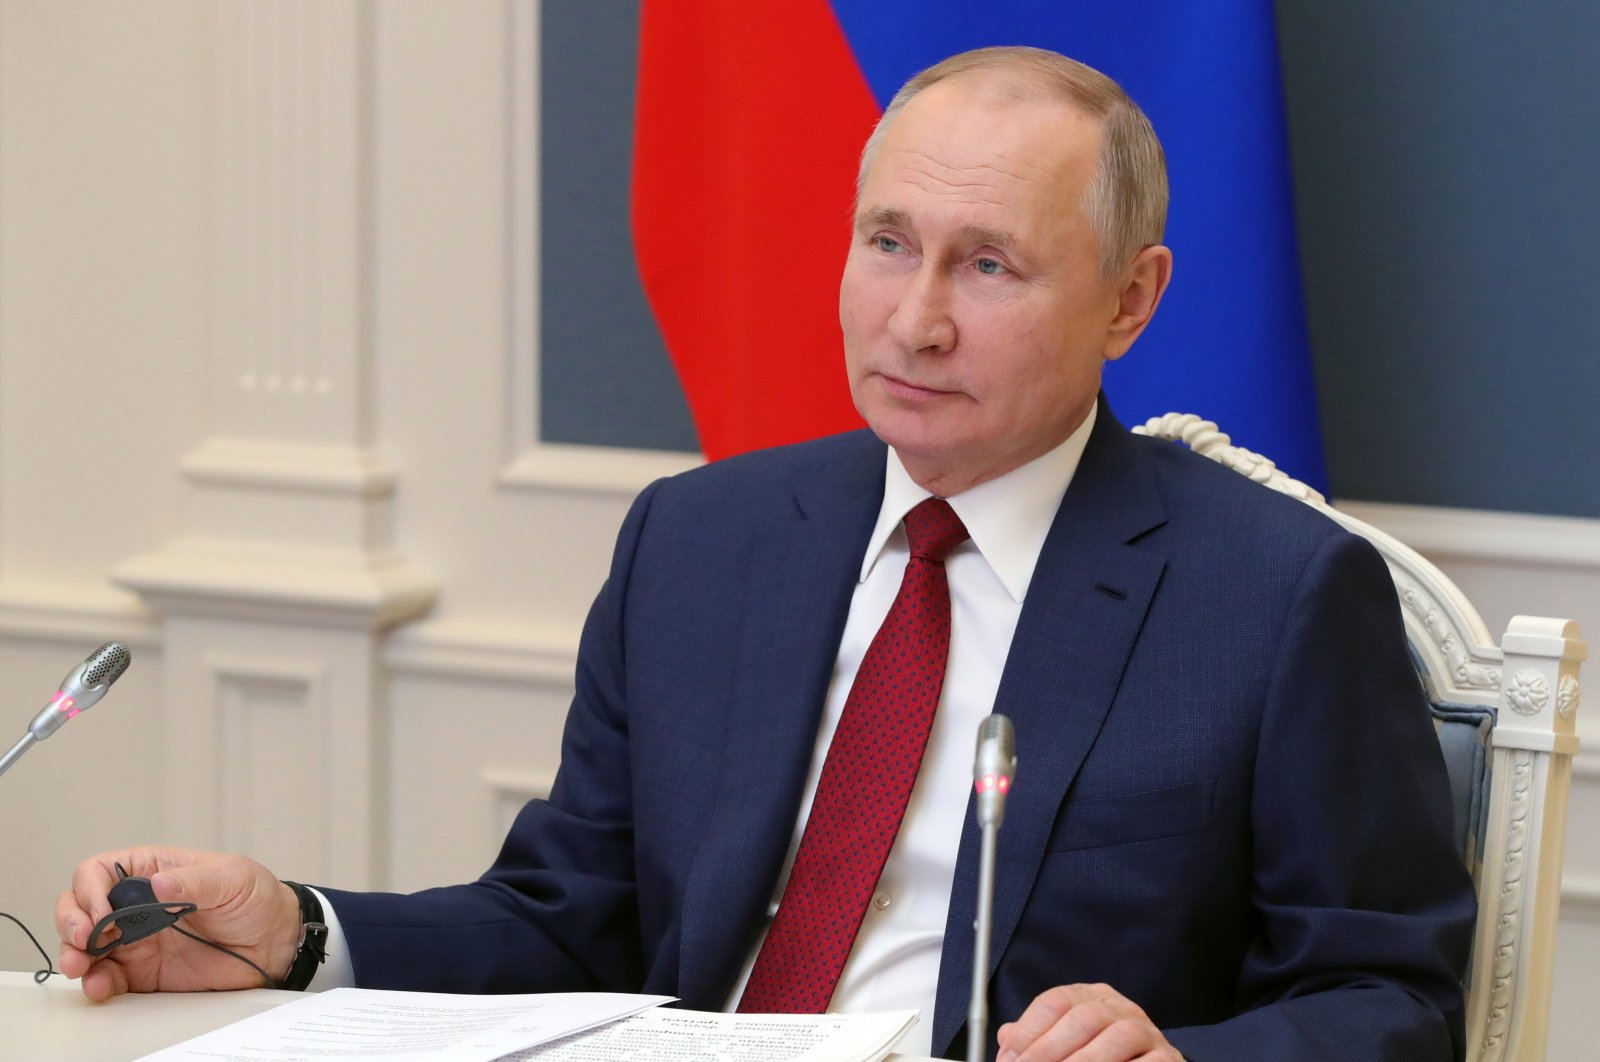 Russian President Vladimir Putin speaks to participants of the World Economic Forum via video in Moscow, Russia, Wednesday, Jan. 27, 2021. (AP Photo)